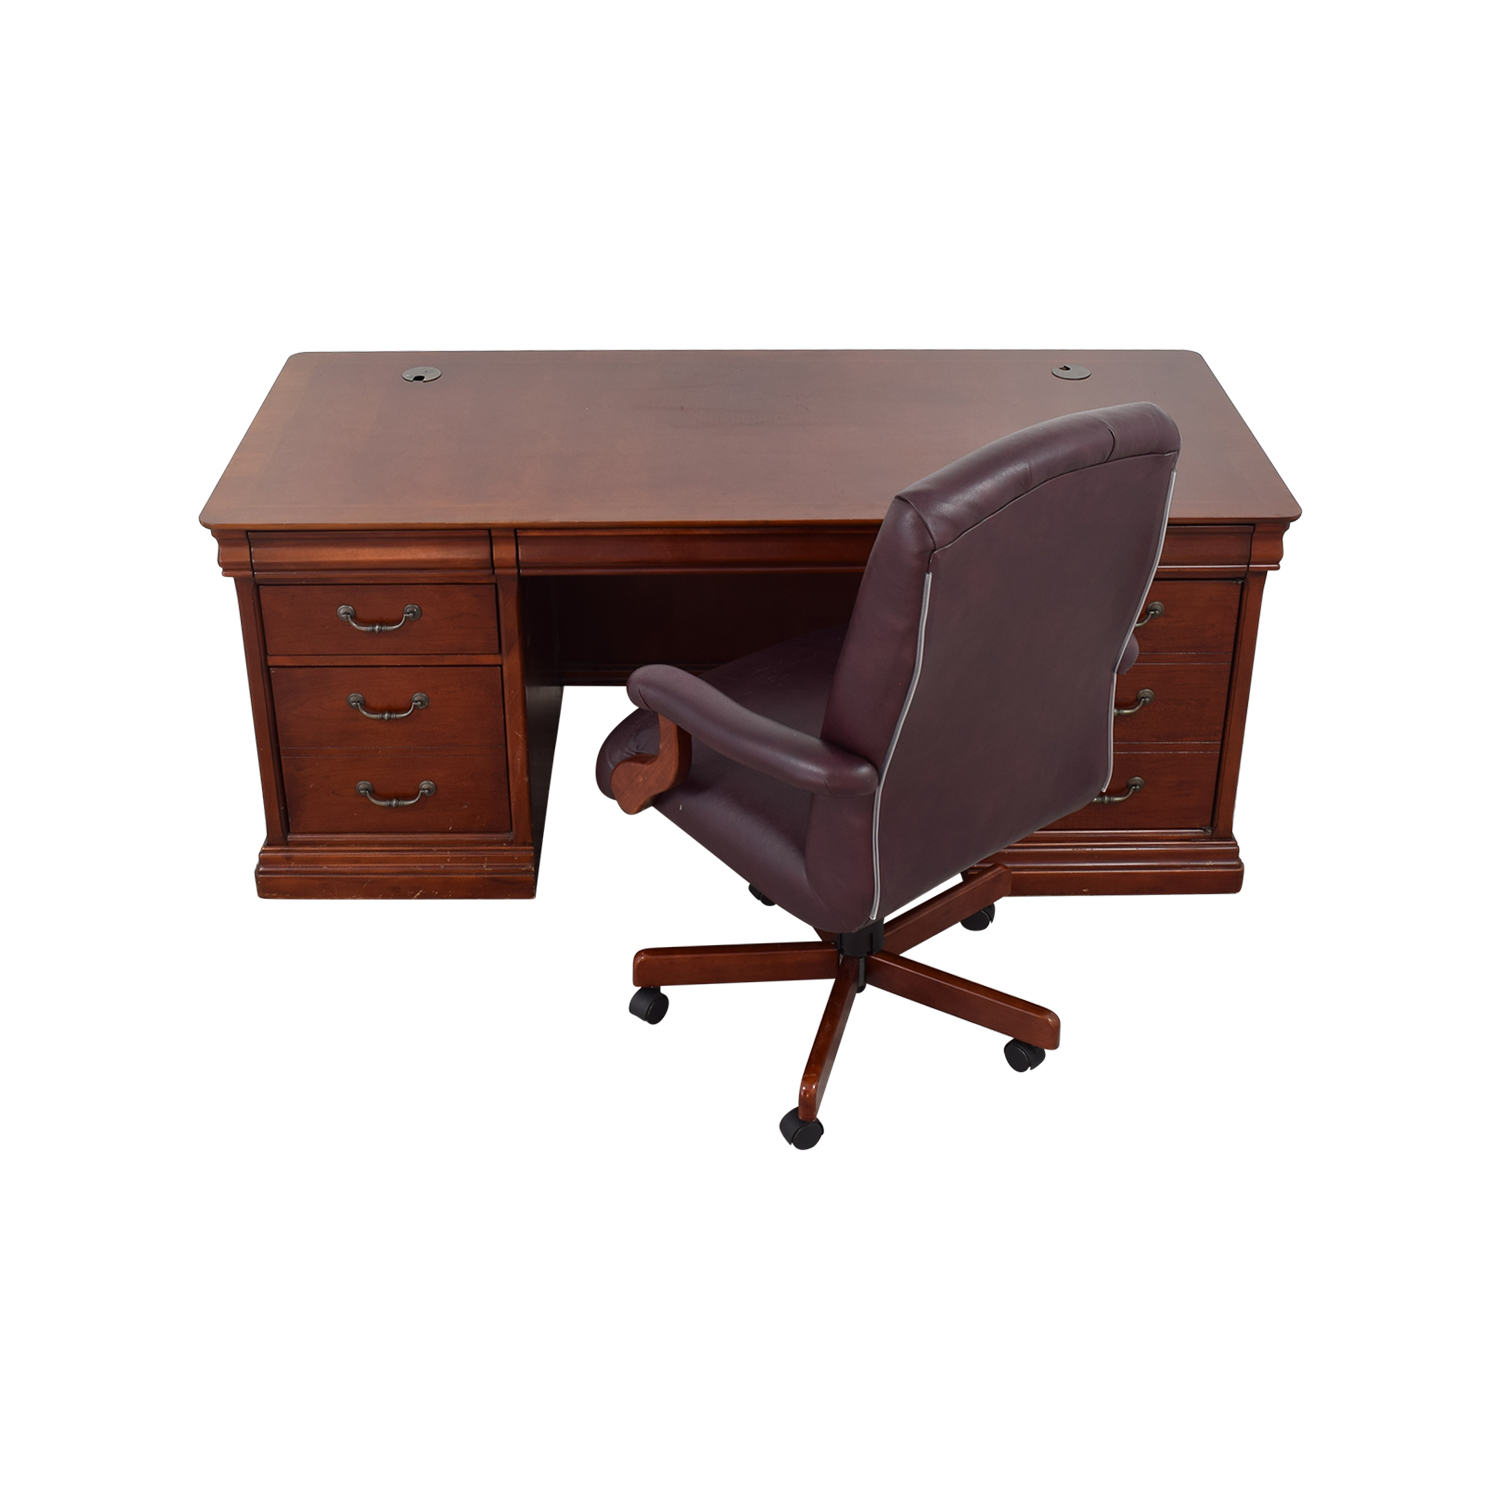 Astonishing 81 Off Havertys Havertys Executive Desk With Leather Chair Tables Interior Design Ideas Clesiryabchikinfo